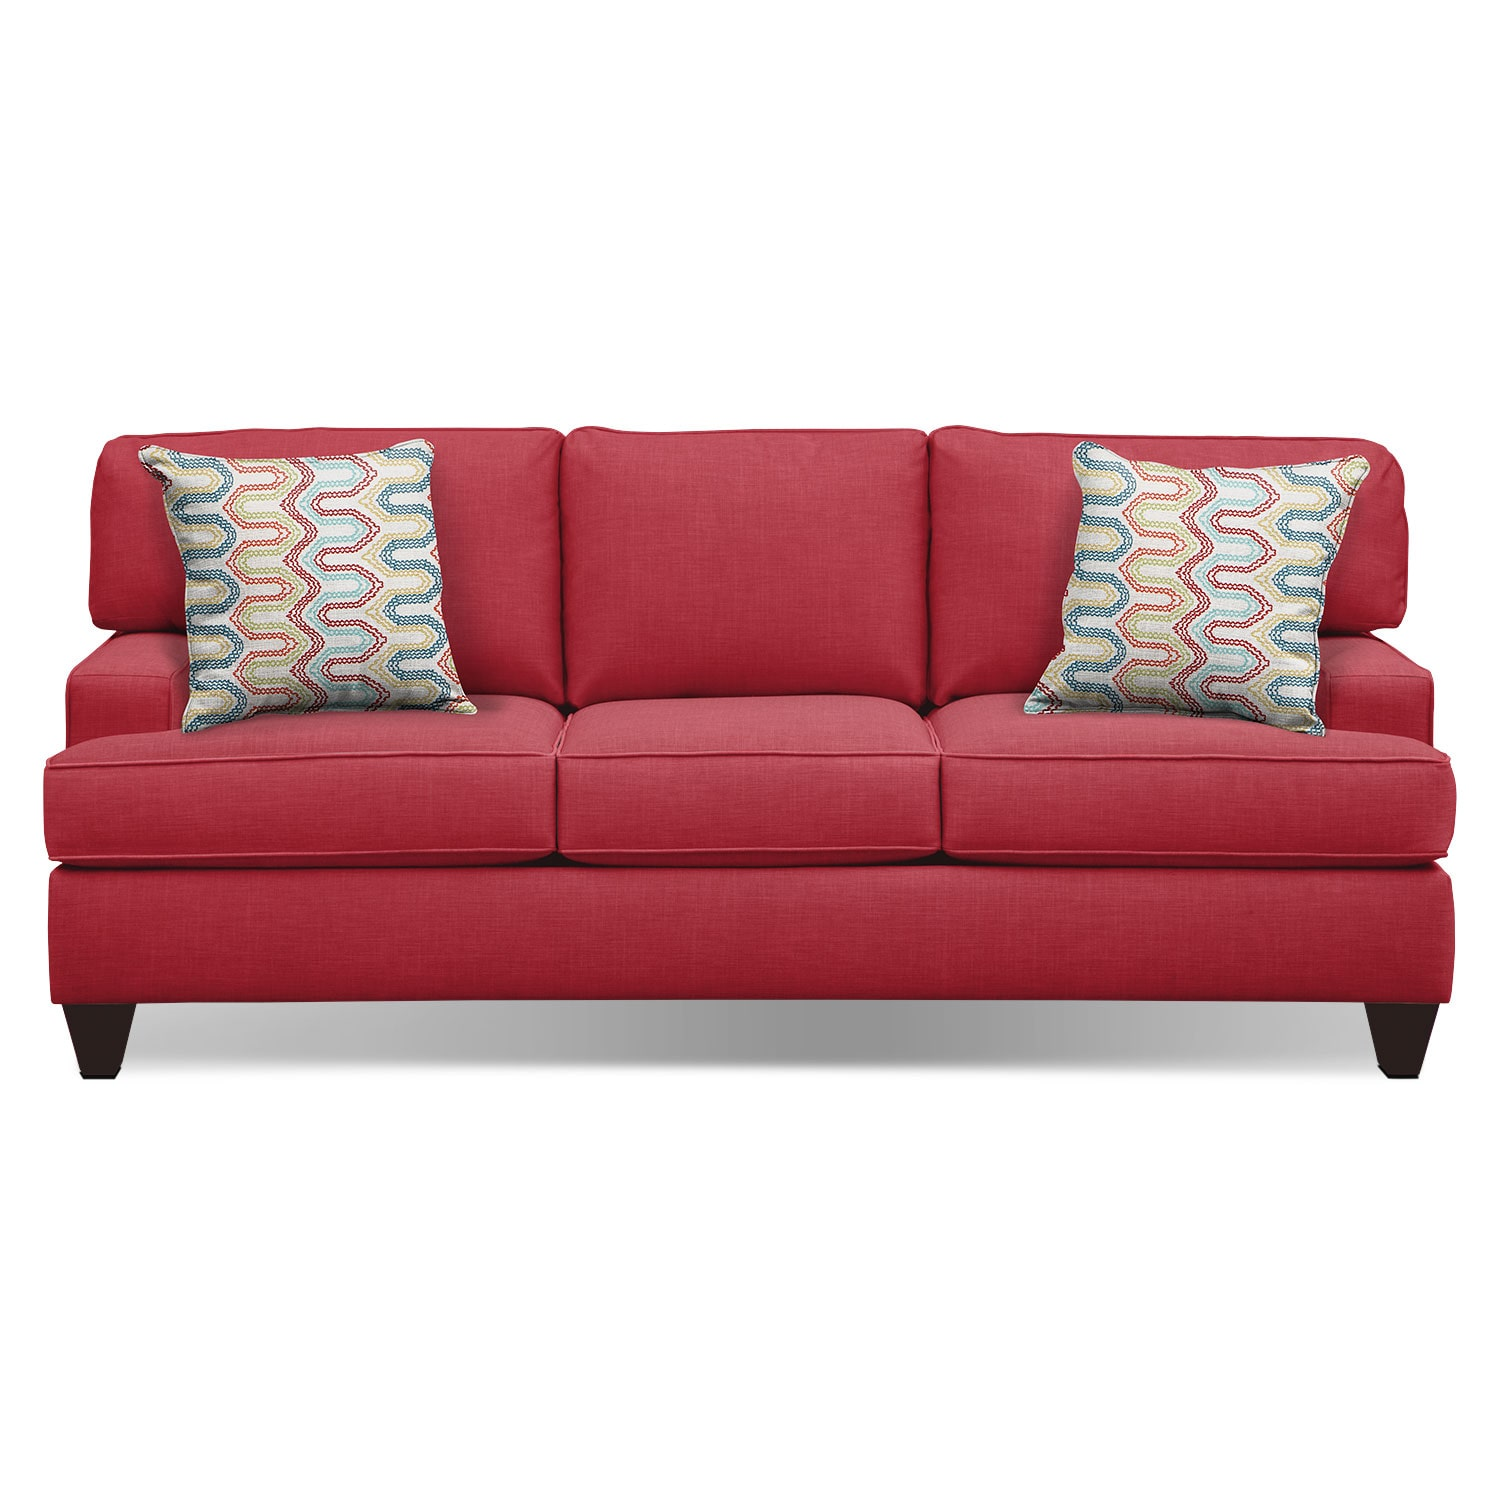 "Conner Red 87"" Memory Foam Sleeper Sofa"